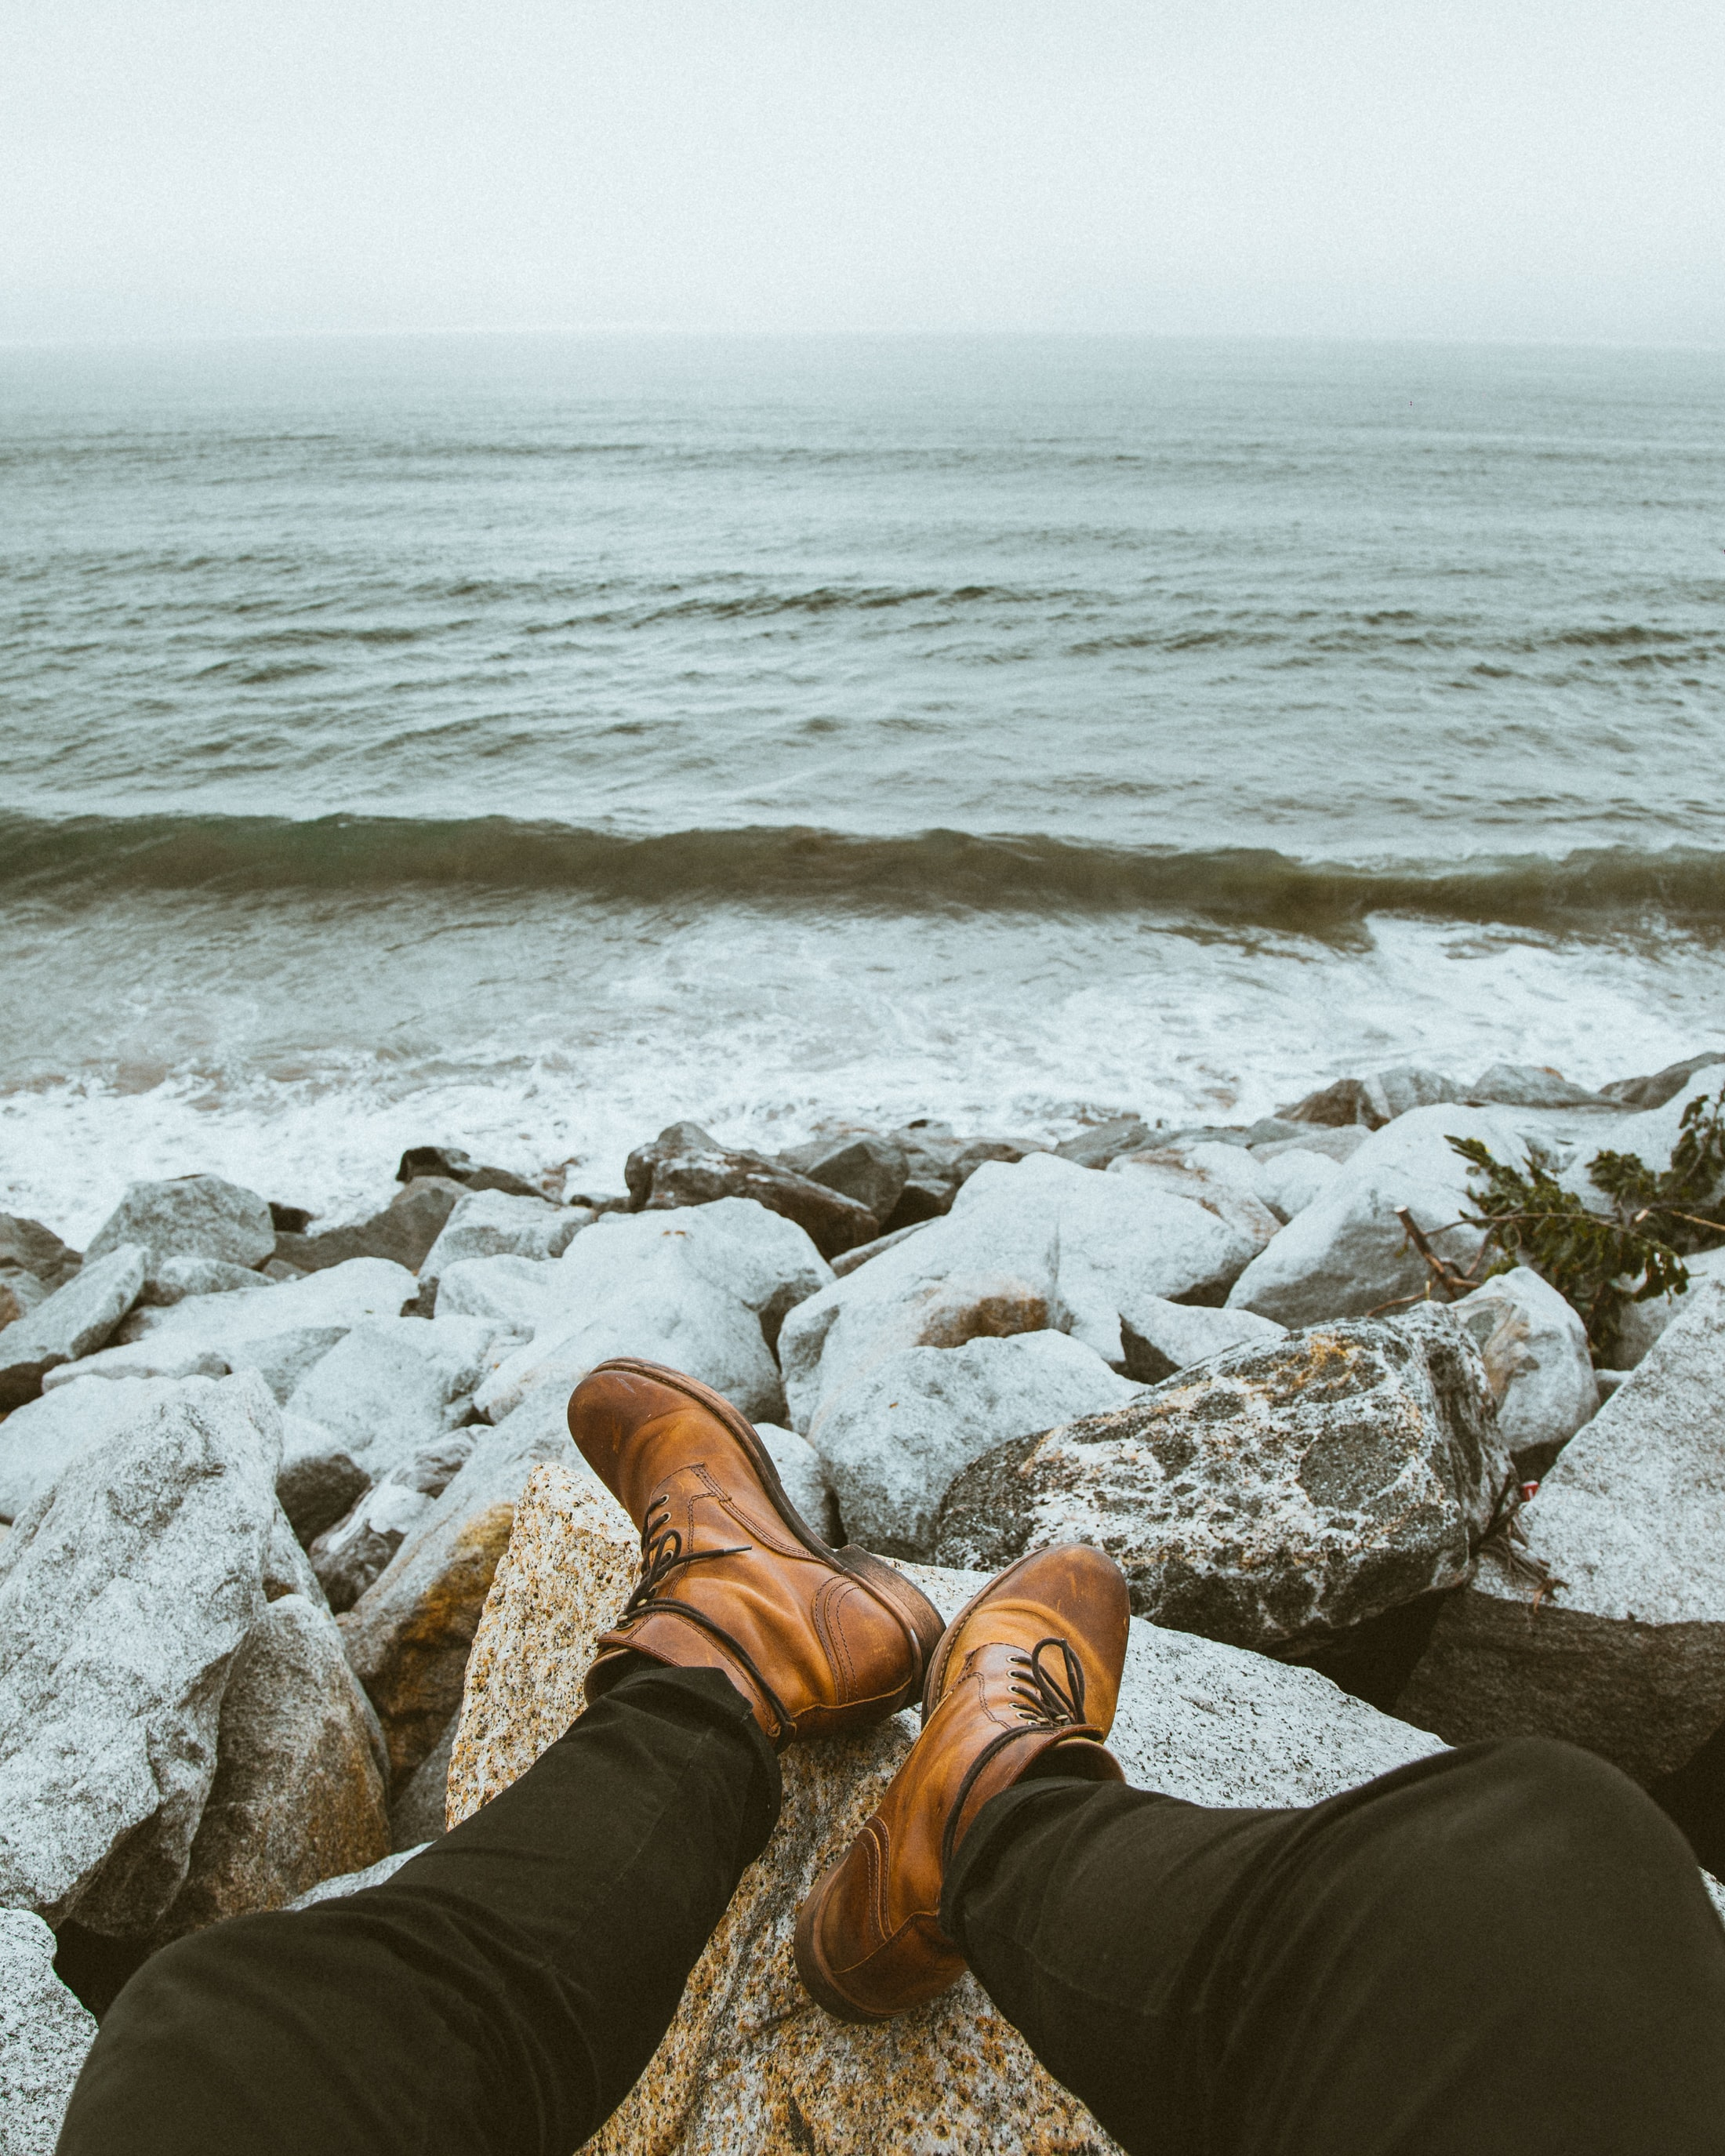 A person wearing black jeans and boots sitting on rocks near the water